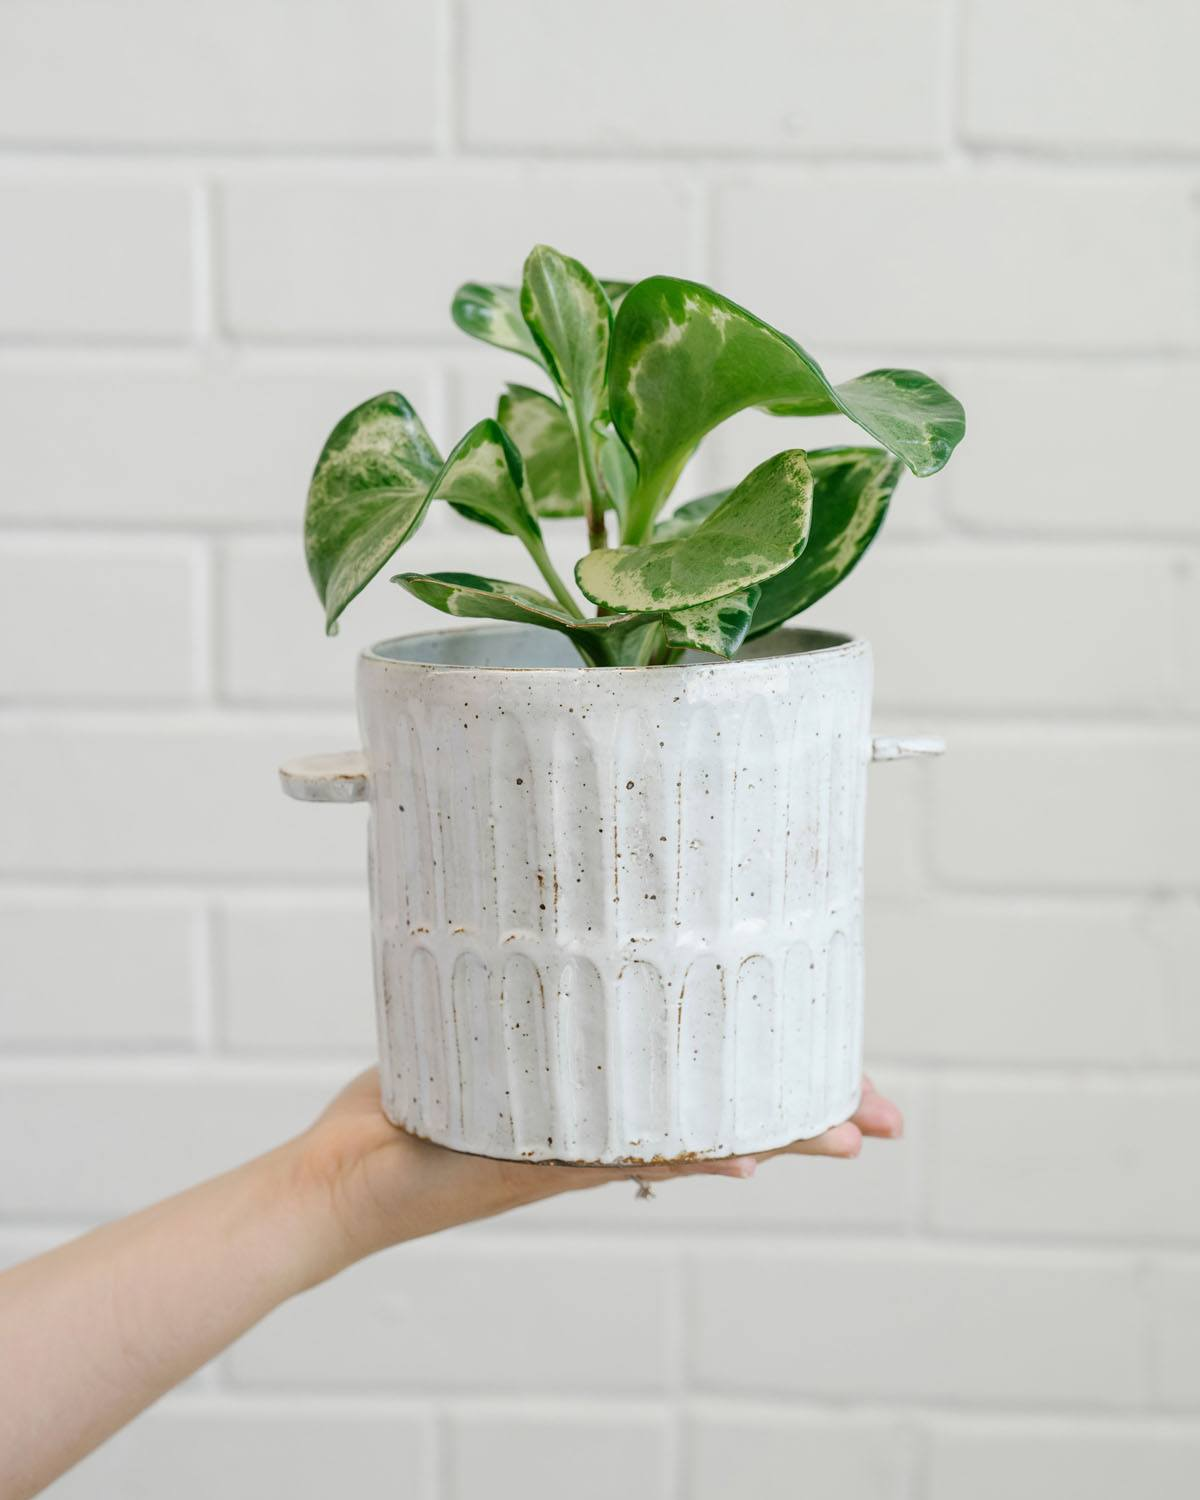 Angus & Celeste Milk Wash Artisan Plant Pot Styled Small Vertical Lines